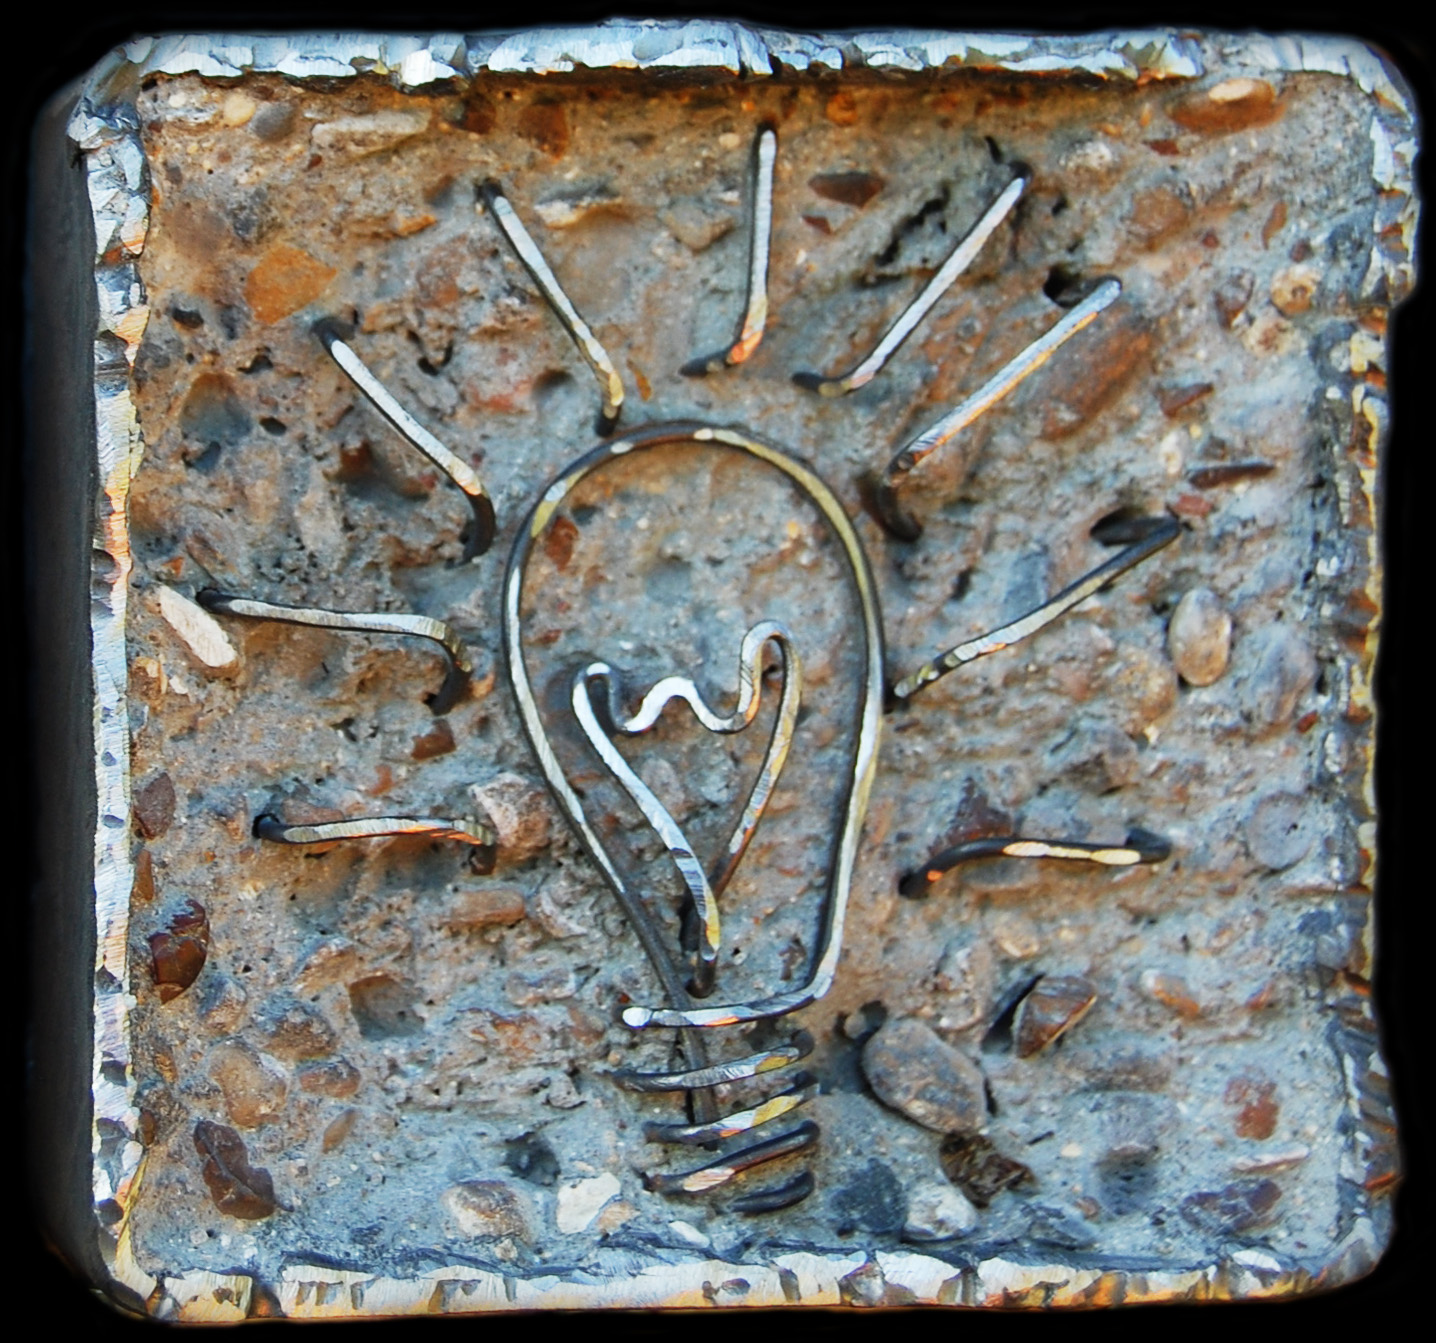 light-bulb-fossil-icon-tech-expressionism-my-favorite-machine-belveal.jpg